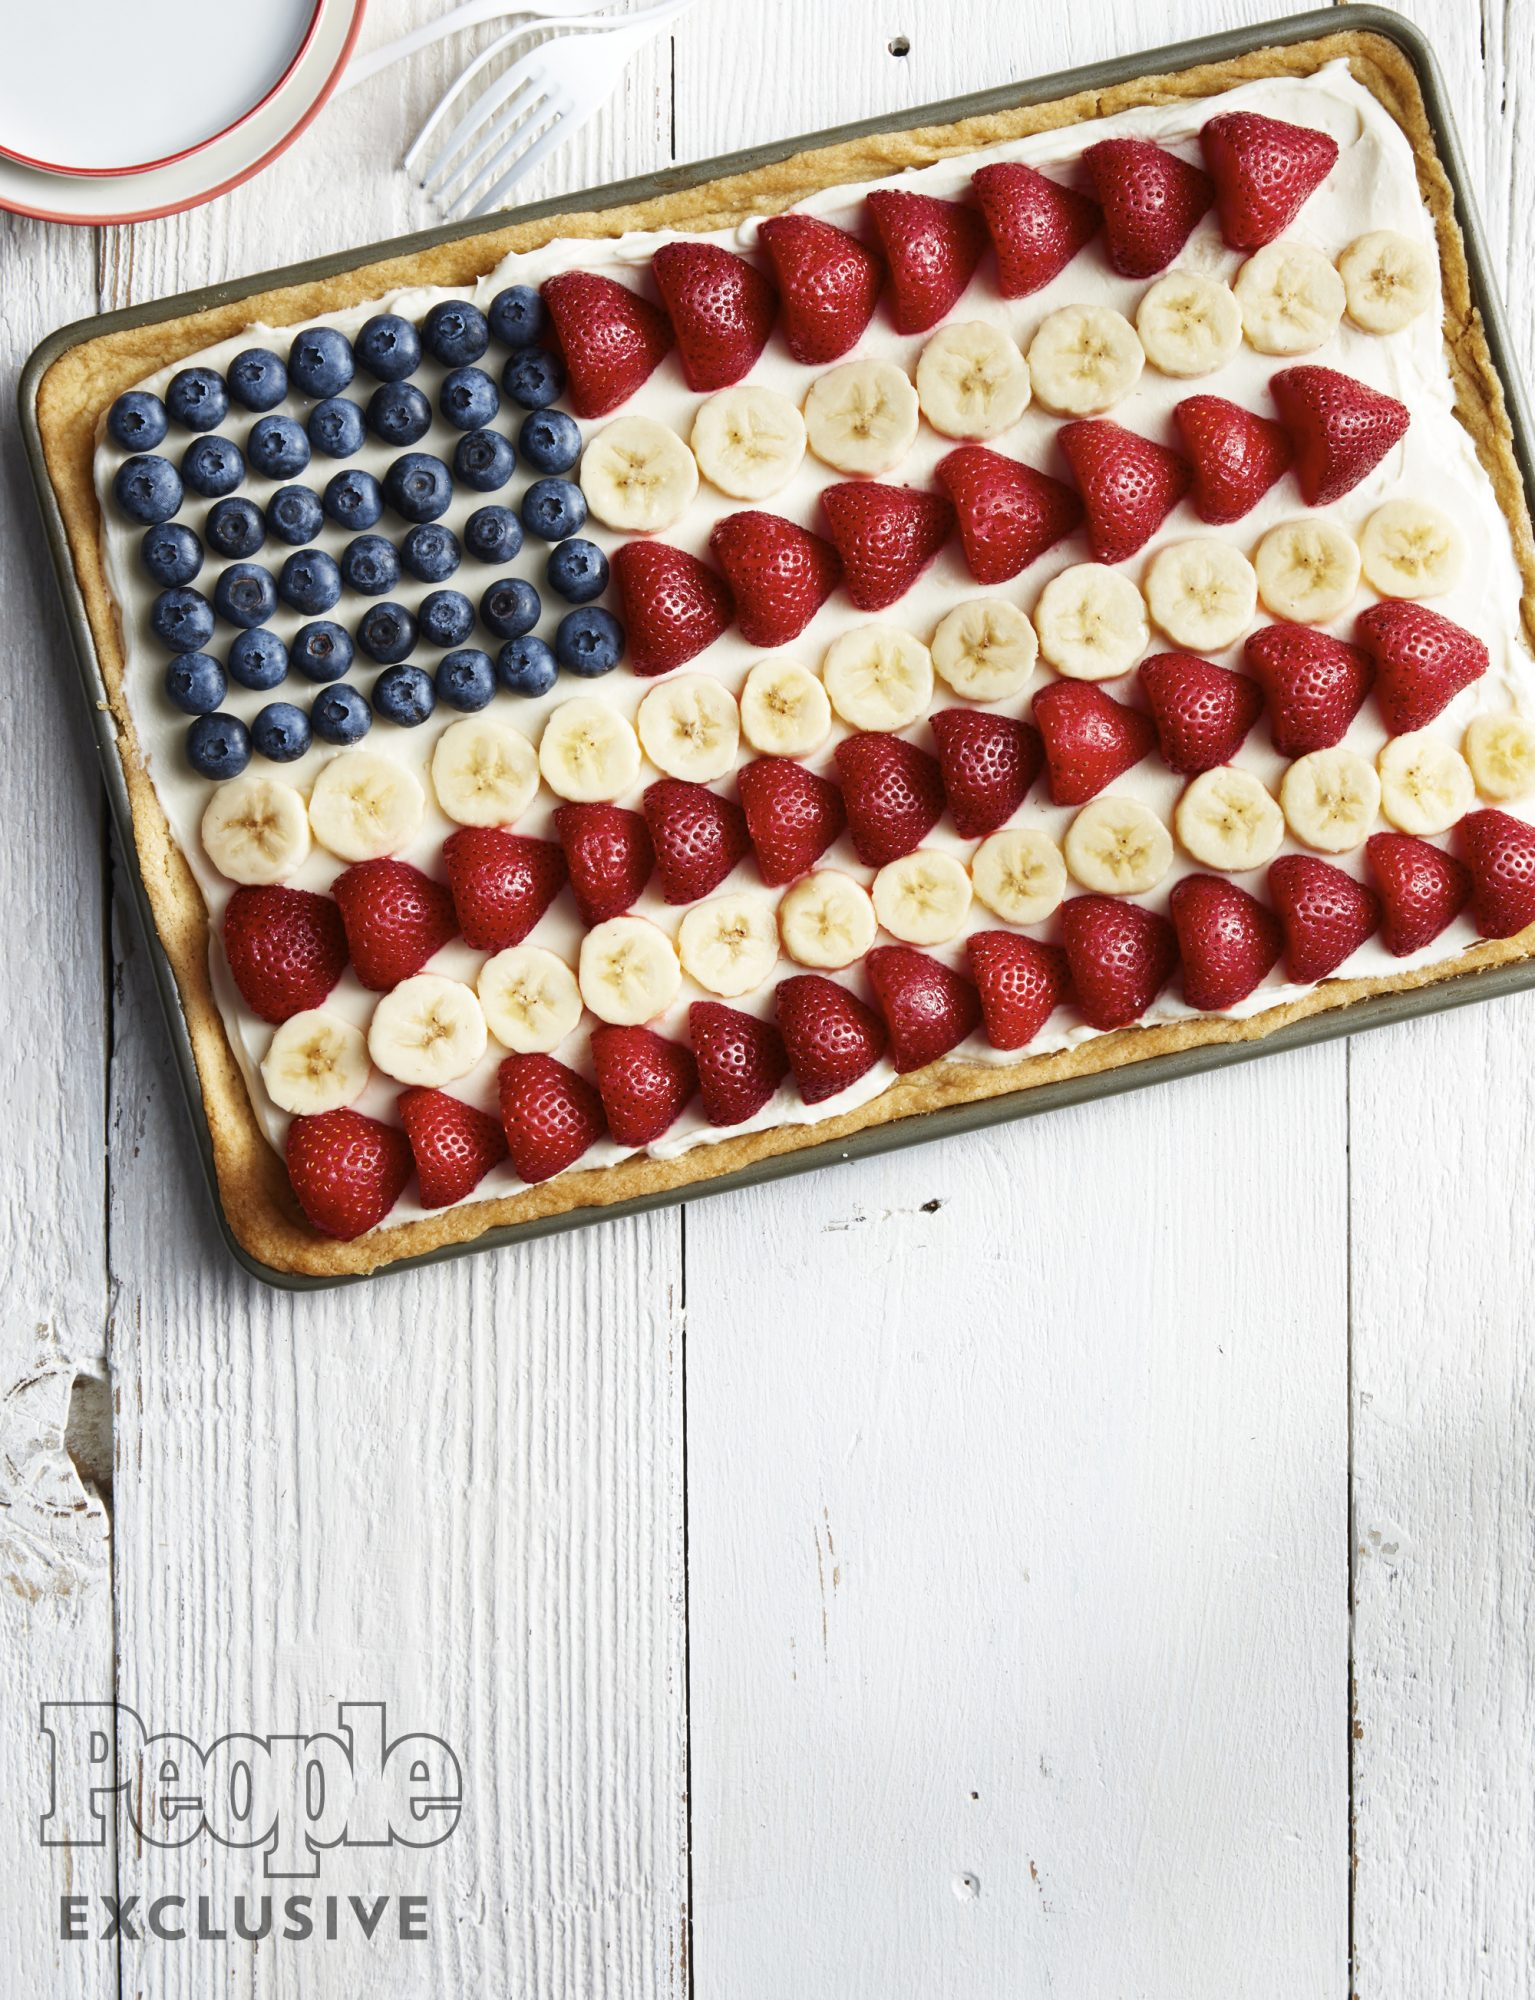 4th of july foods